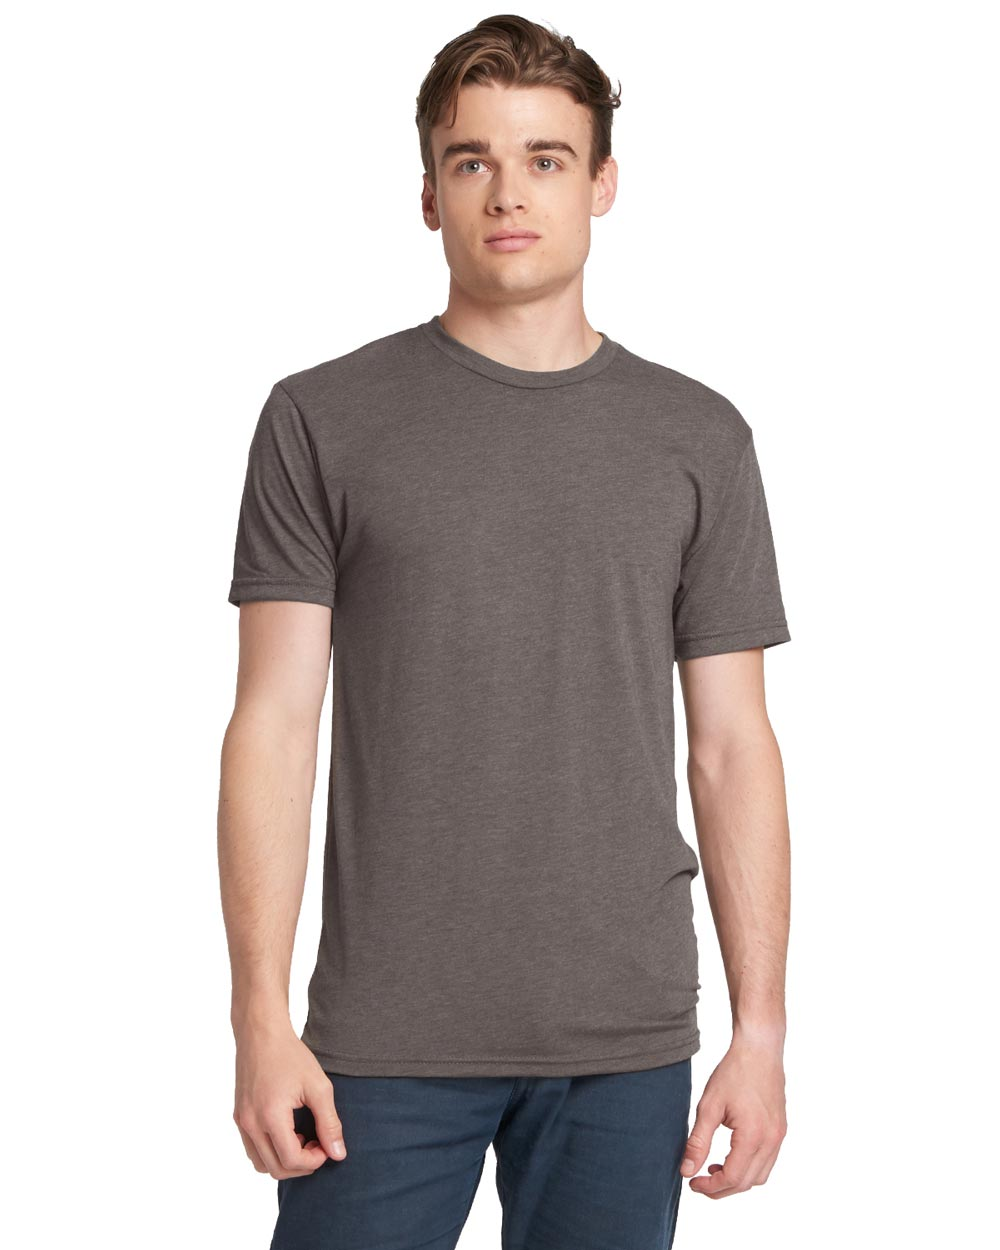 Next Level 6010 - Unisex Triblend T-Shirt